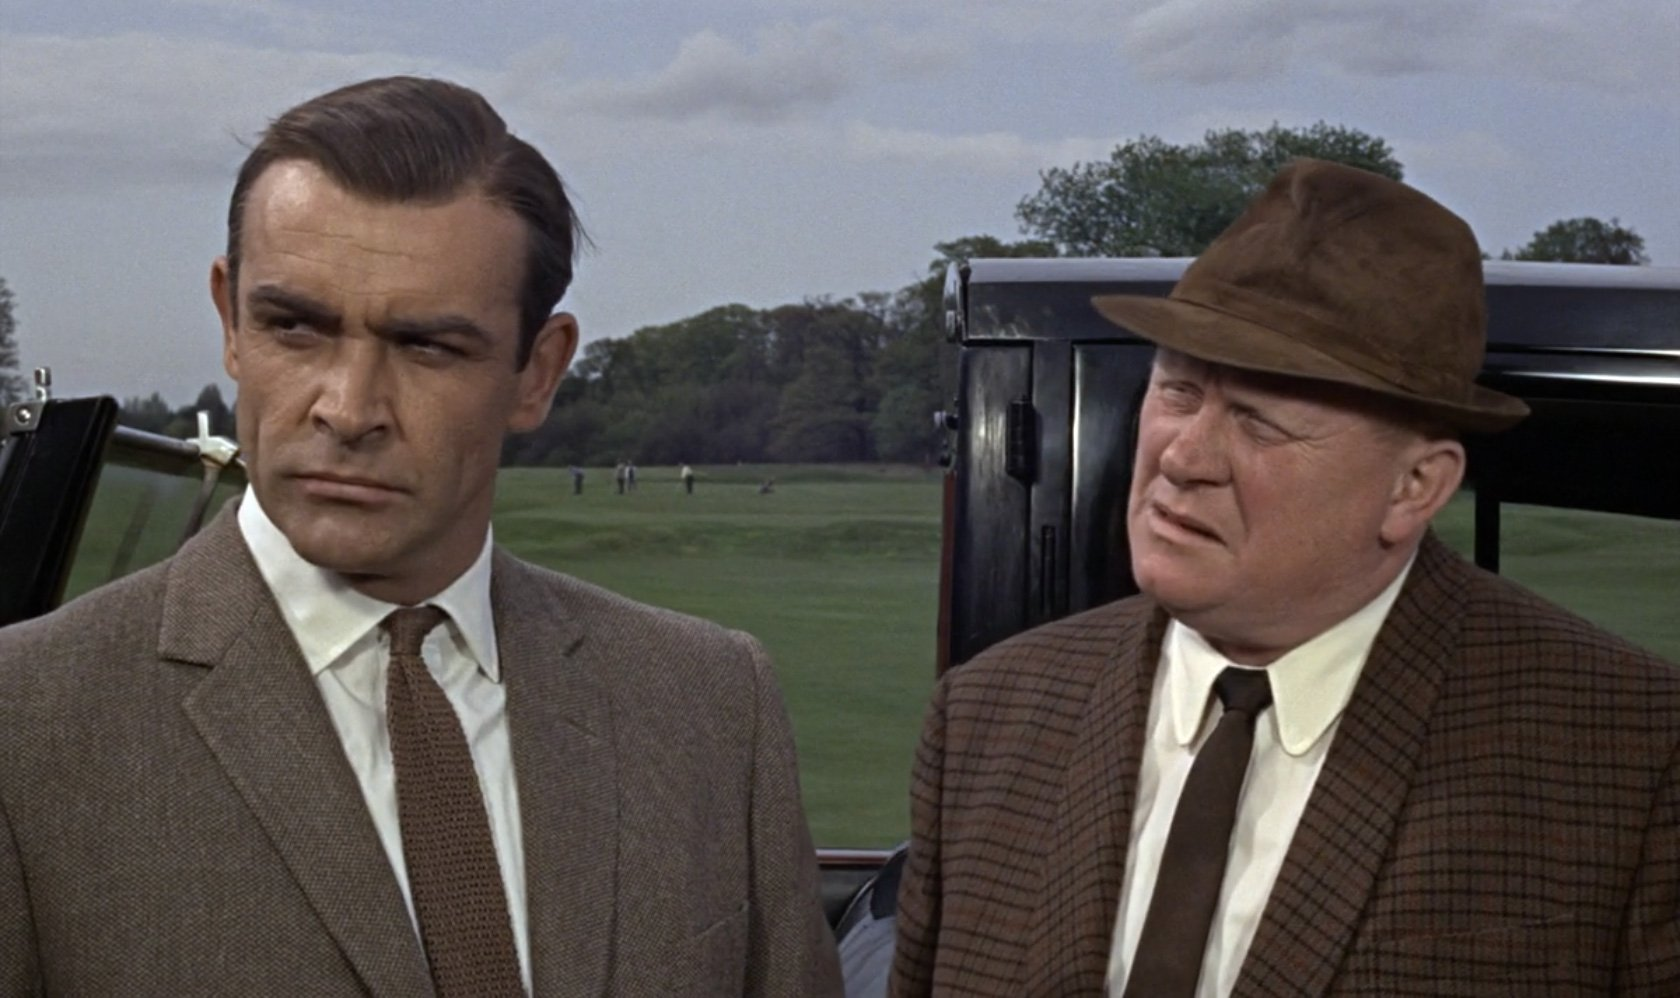 Goldfinger's Shawl-Collar Suit – The Suits of James Bond